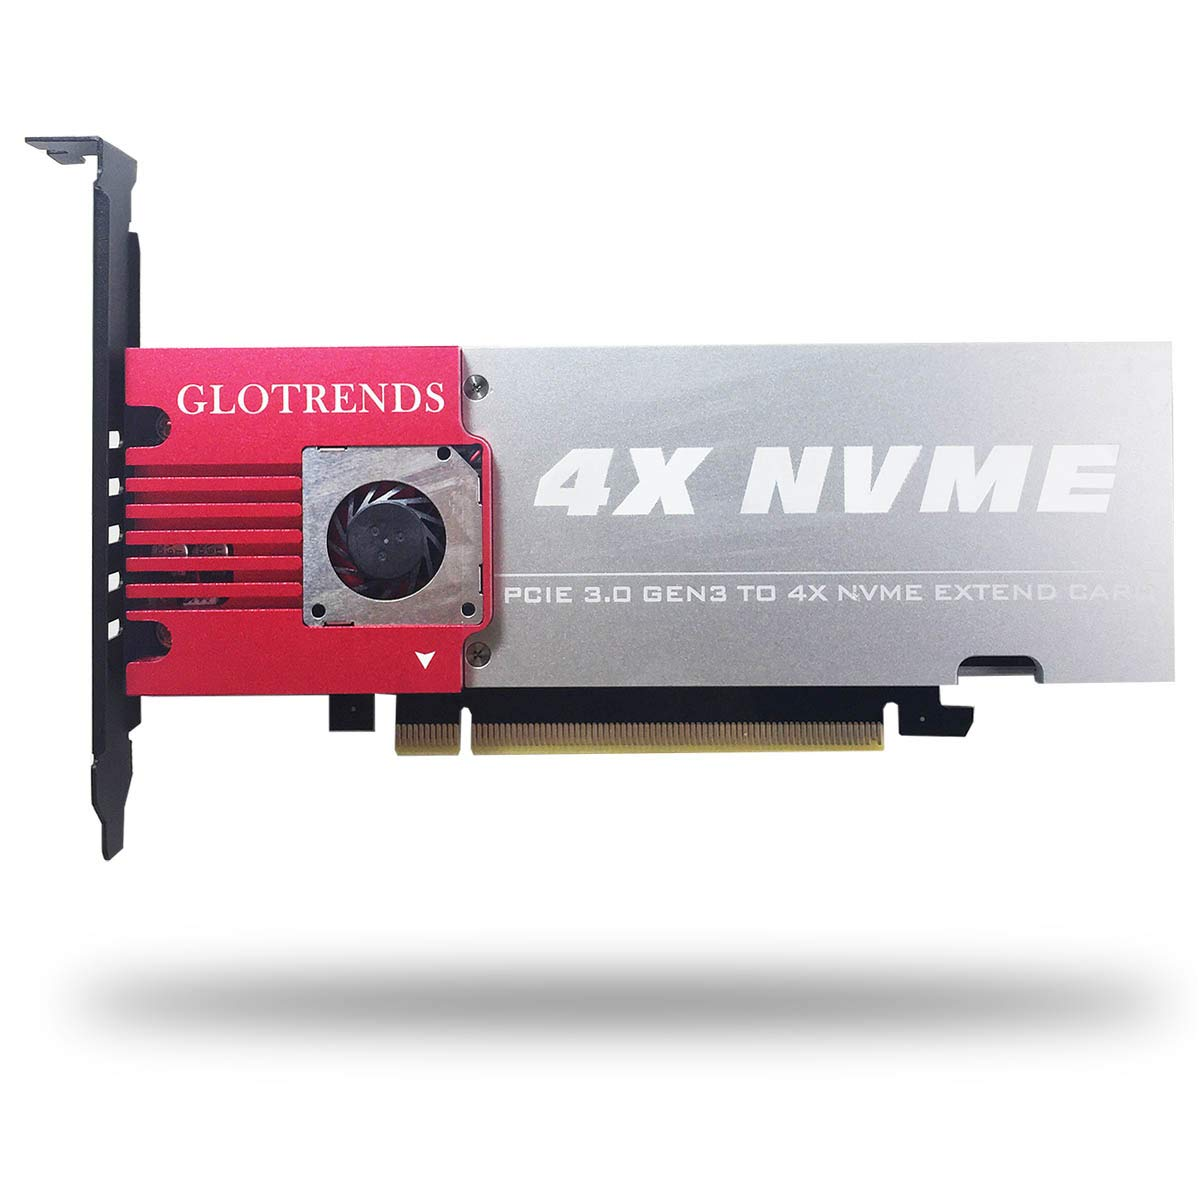 GLOTRENDS 4-Bay M.2 NVME Adapter, Soft RAID Support, Up to PCIE 3.0 X8 Bandwidth, Aluminum Cover with Built-in Fan (Palace)